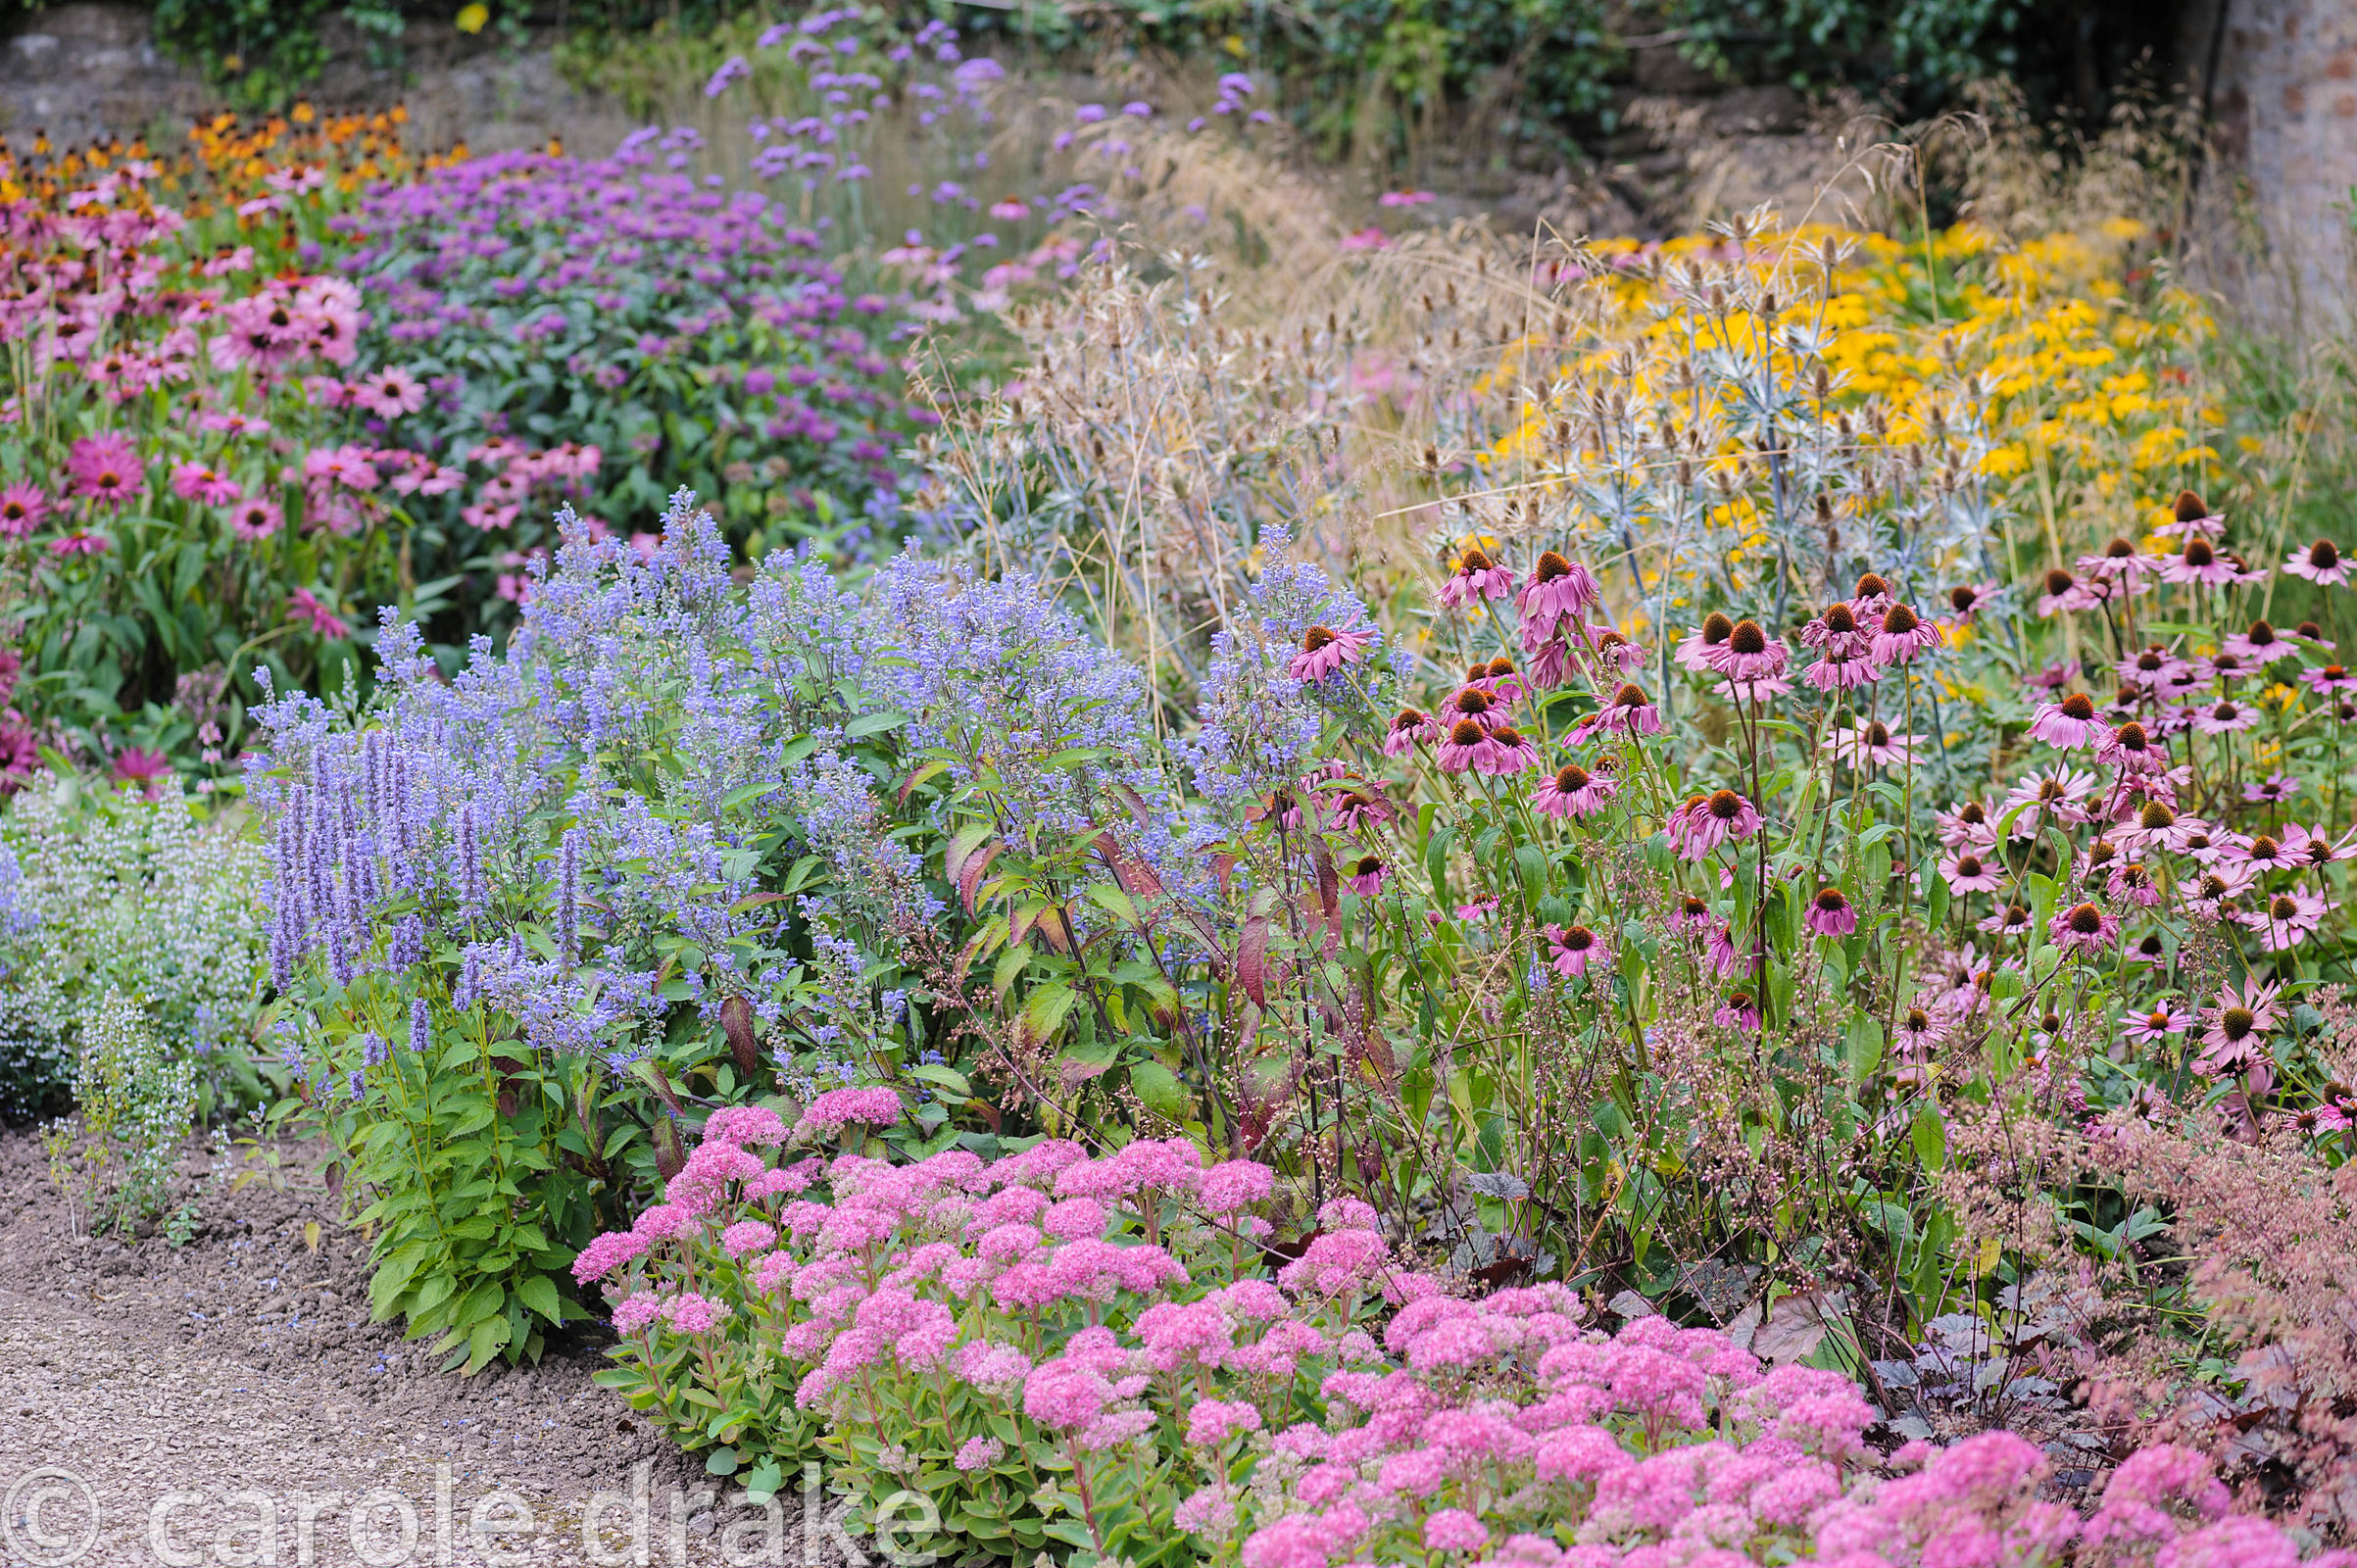 Late summer border planted with echinaceas, sedums, agastaches, heleniums and grasses in the Garden of Reflection at the Bish...